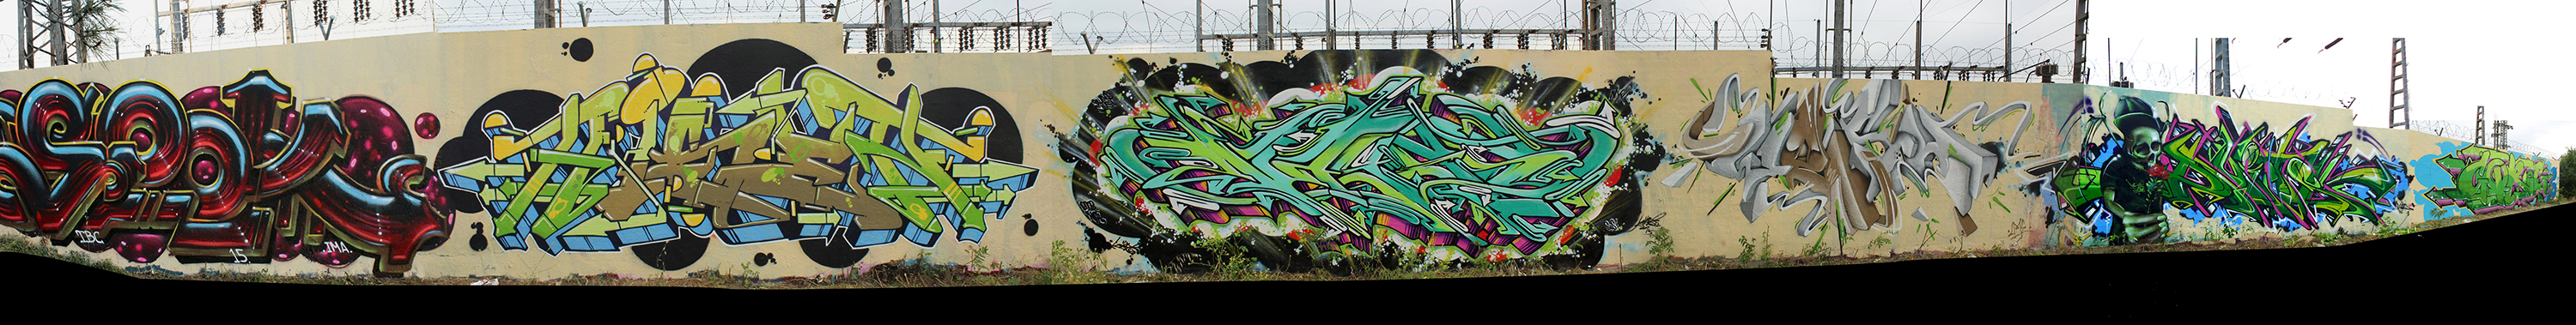 Meeting of styles Madrid 2015